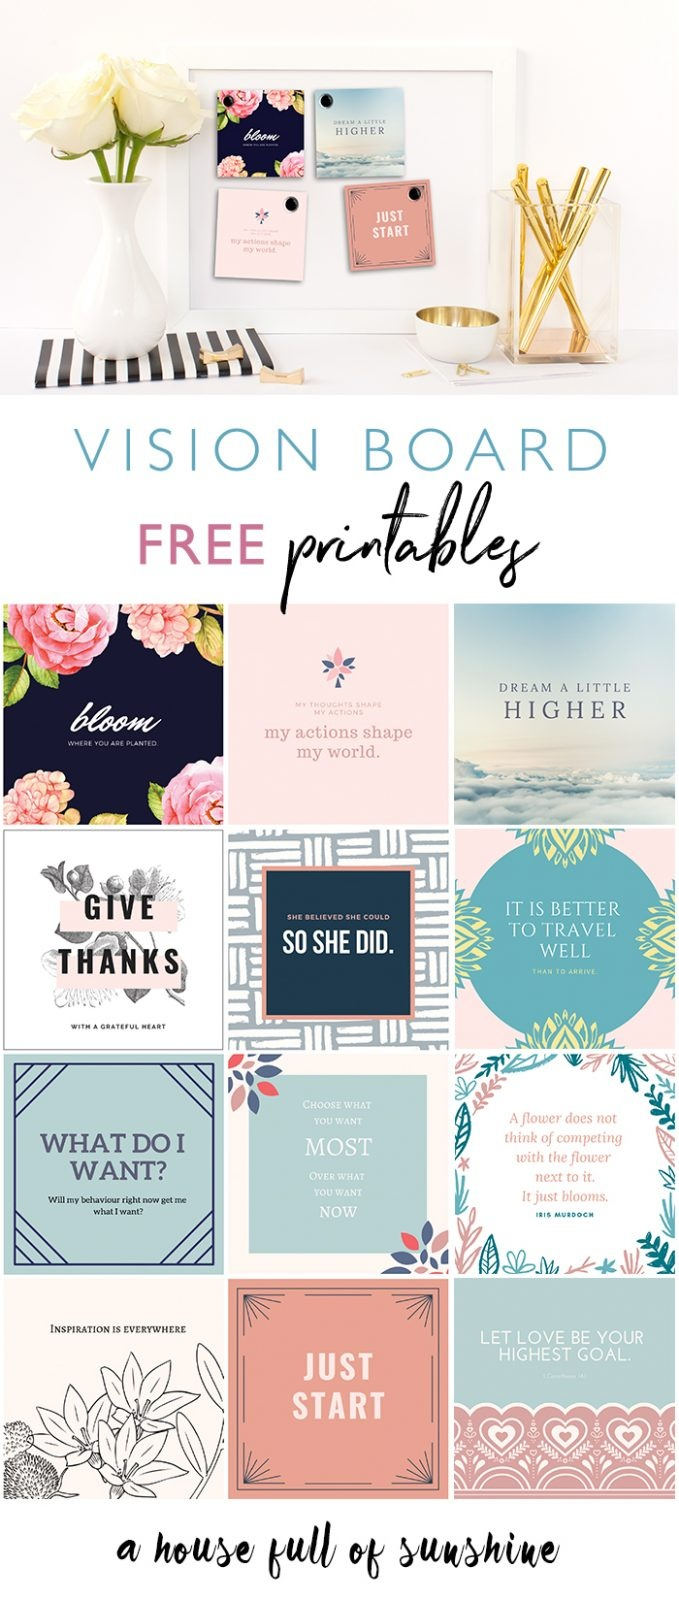 Free 2019 Vision Board Printables!   A House Full Of Sunshine - Free Weight Loss Vision Board Printables